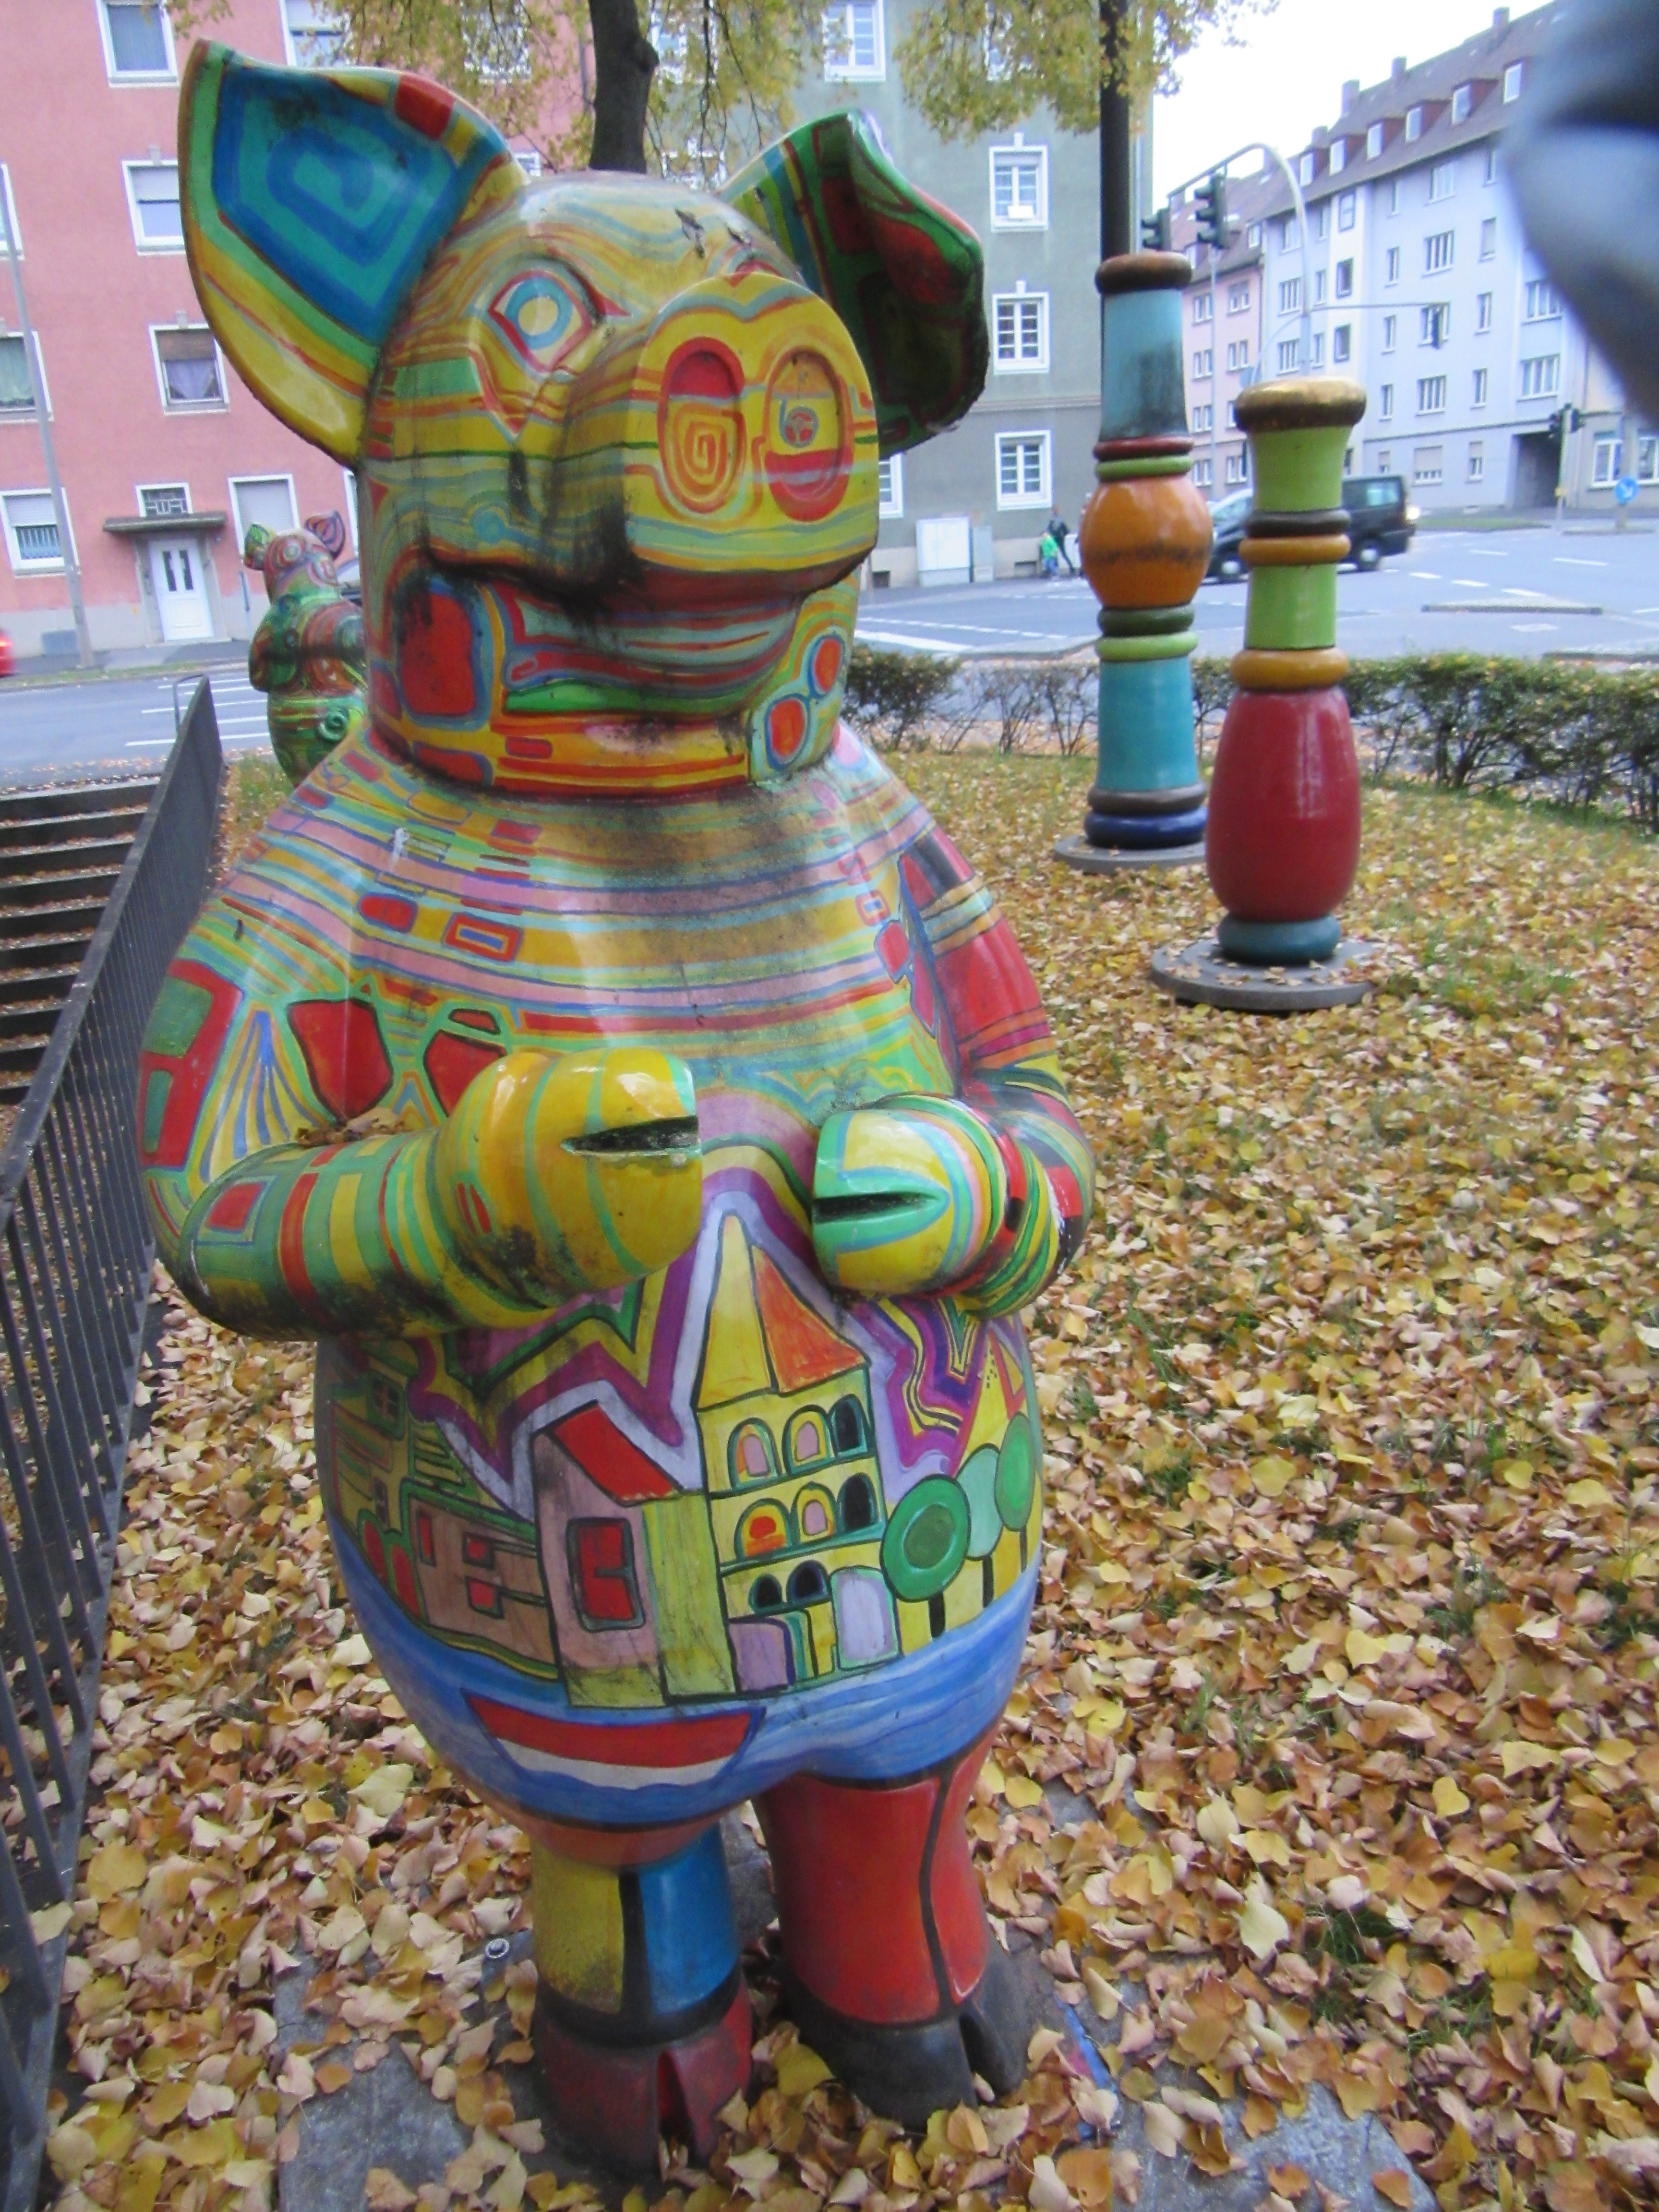 Another colorful Schweinfurt pig.